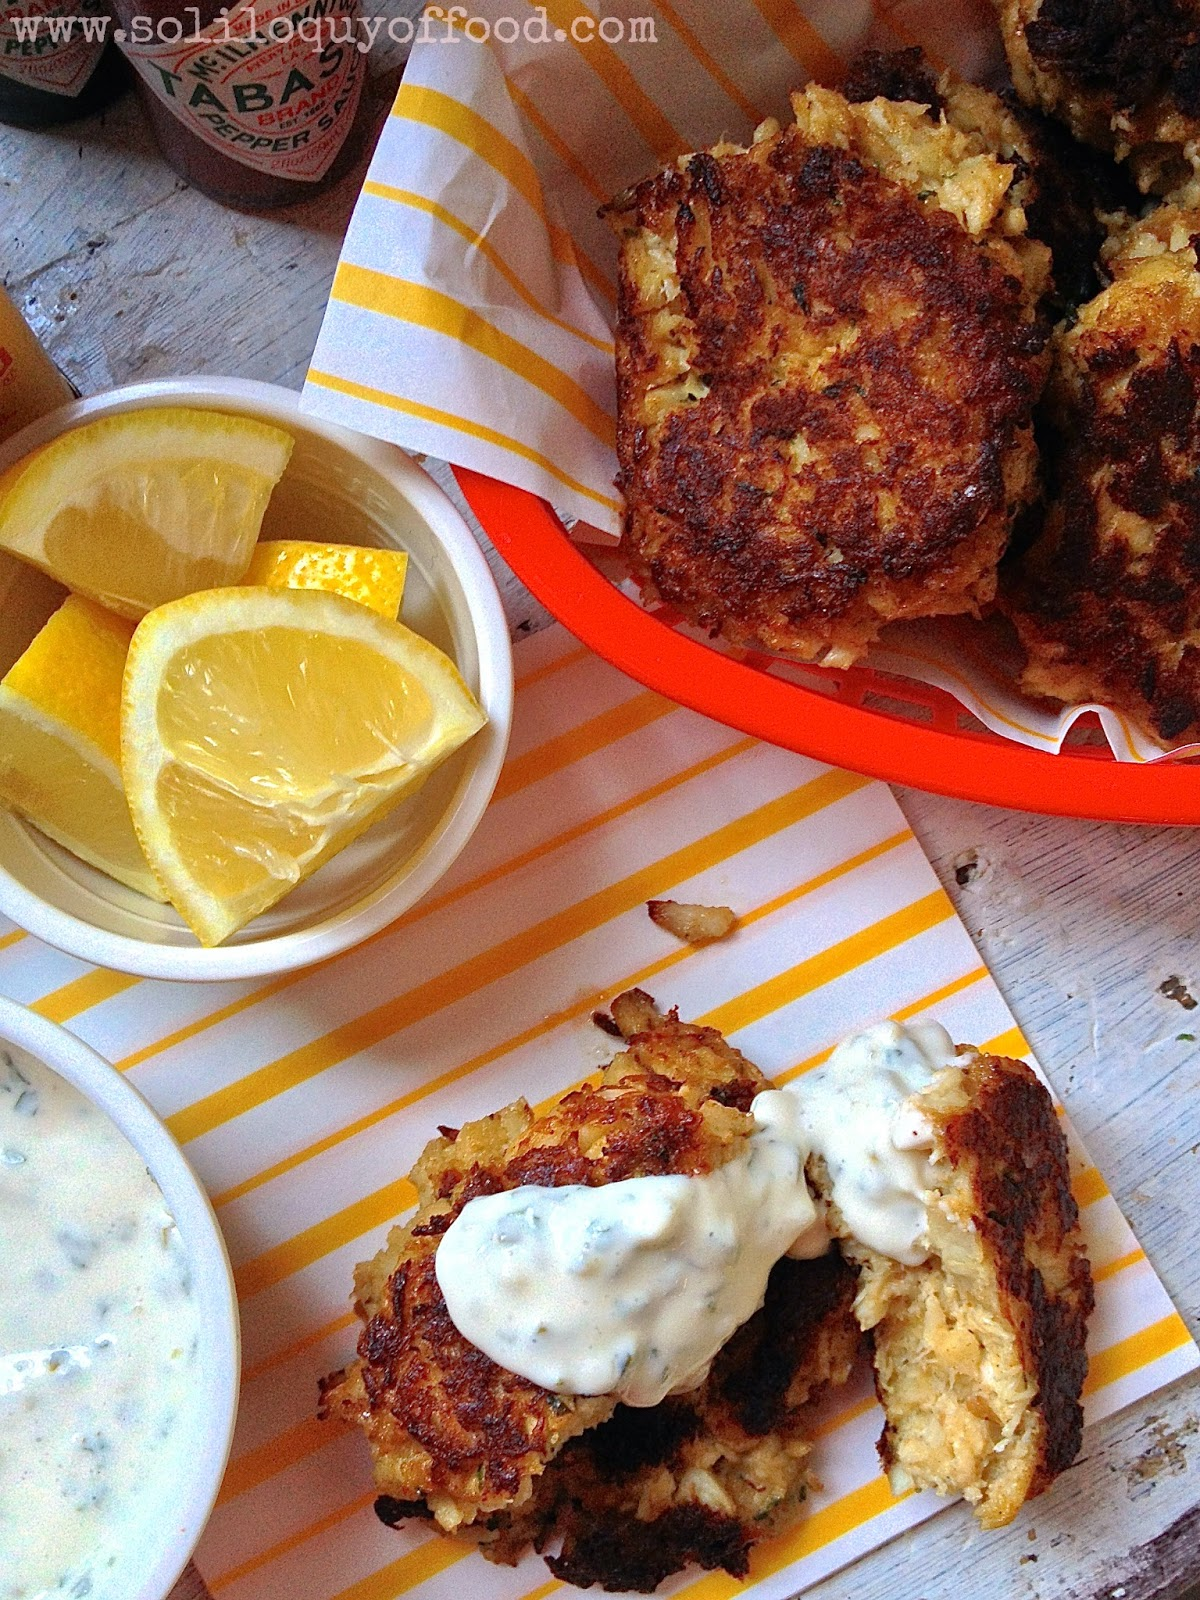 Your only regret when making these Maryland Crab Cakes...that you didn't make MORE - www.soliloquyoffood.com